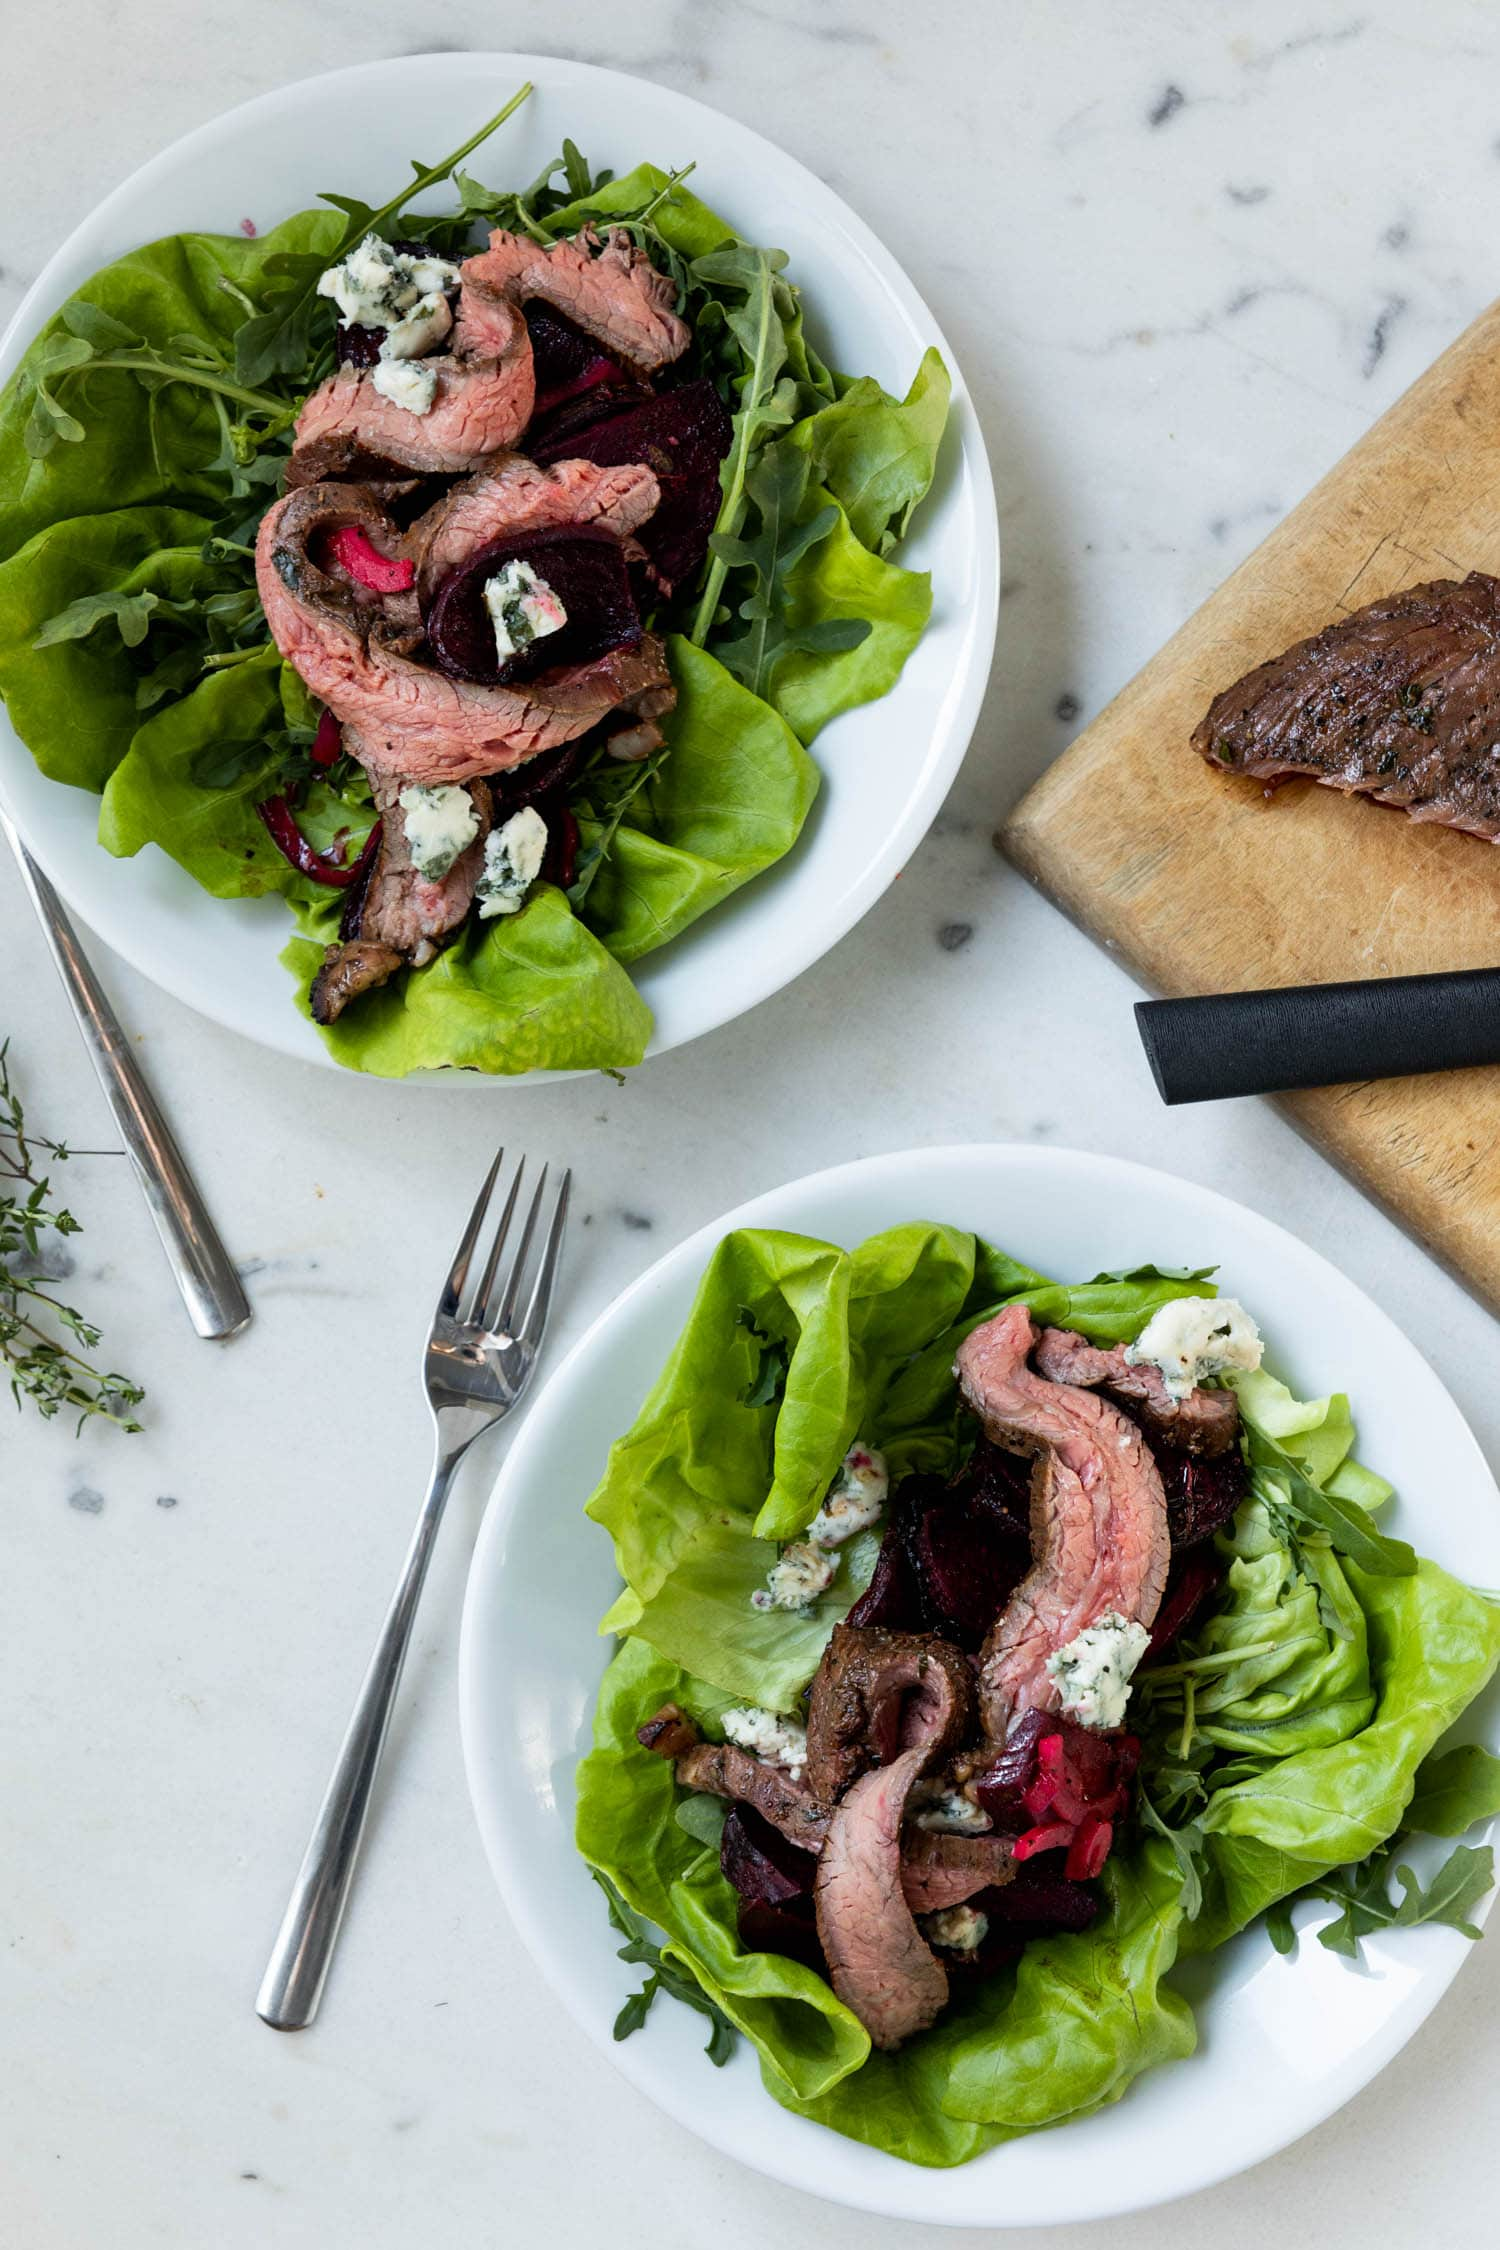 Butter lettuce and arugula topped with grilled flank steak, grilled beets and feta on two white plates with steak, cutting board and knife on a marble surface.